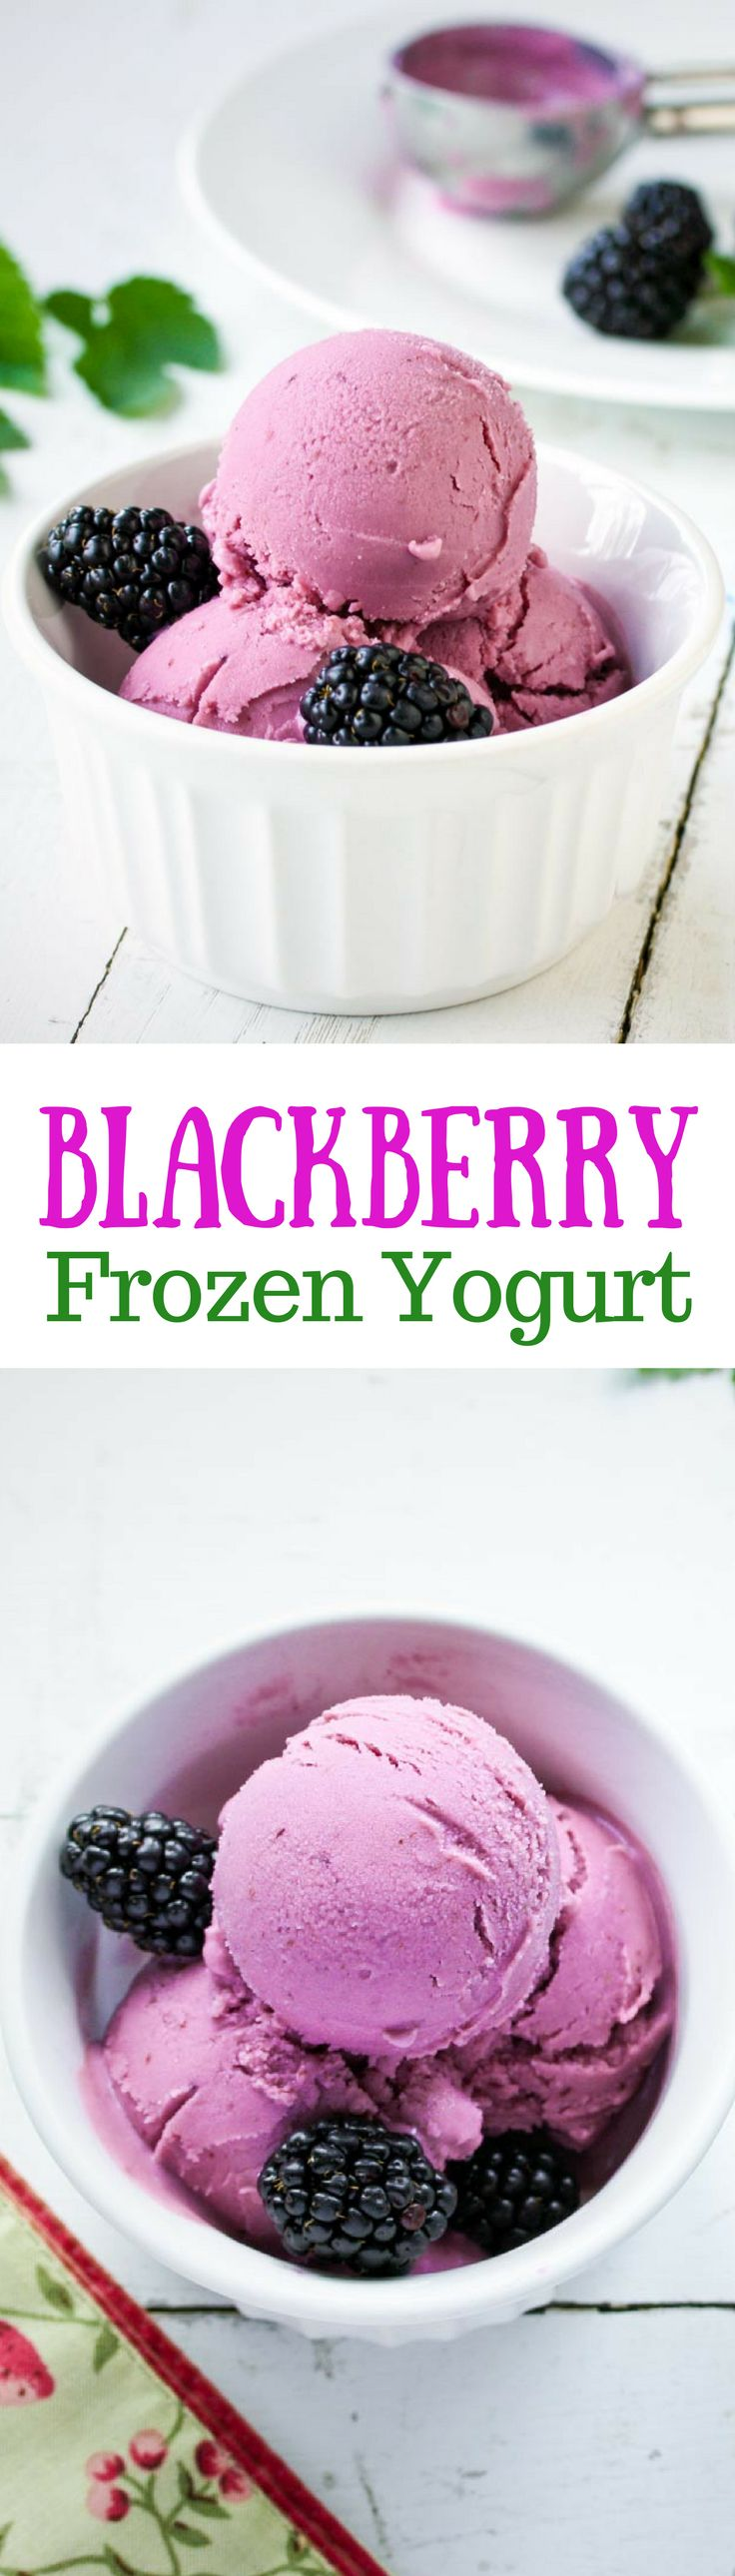 Blackberry Frozen Yogurt - a healthy way to enjoy a frozen dessert, sweetened with blackberries and honey   www.savingdessert.com